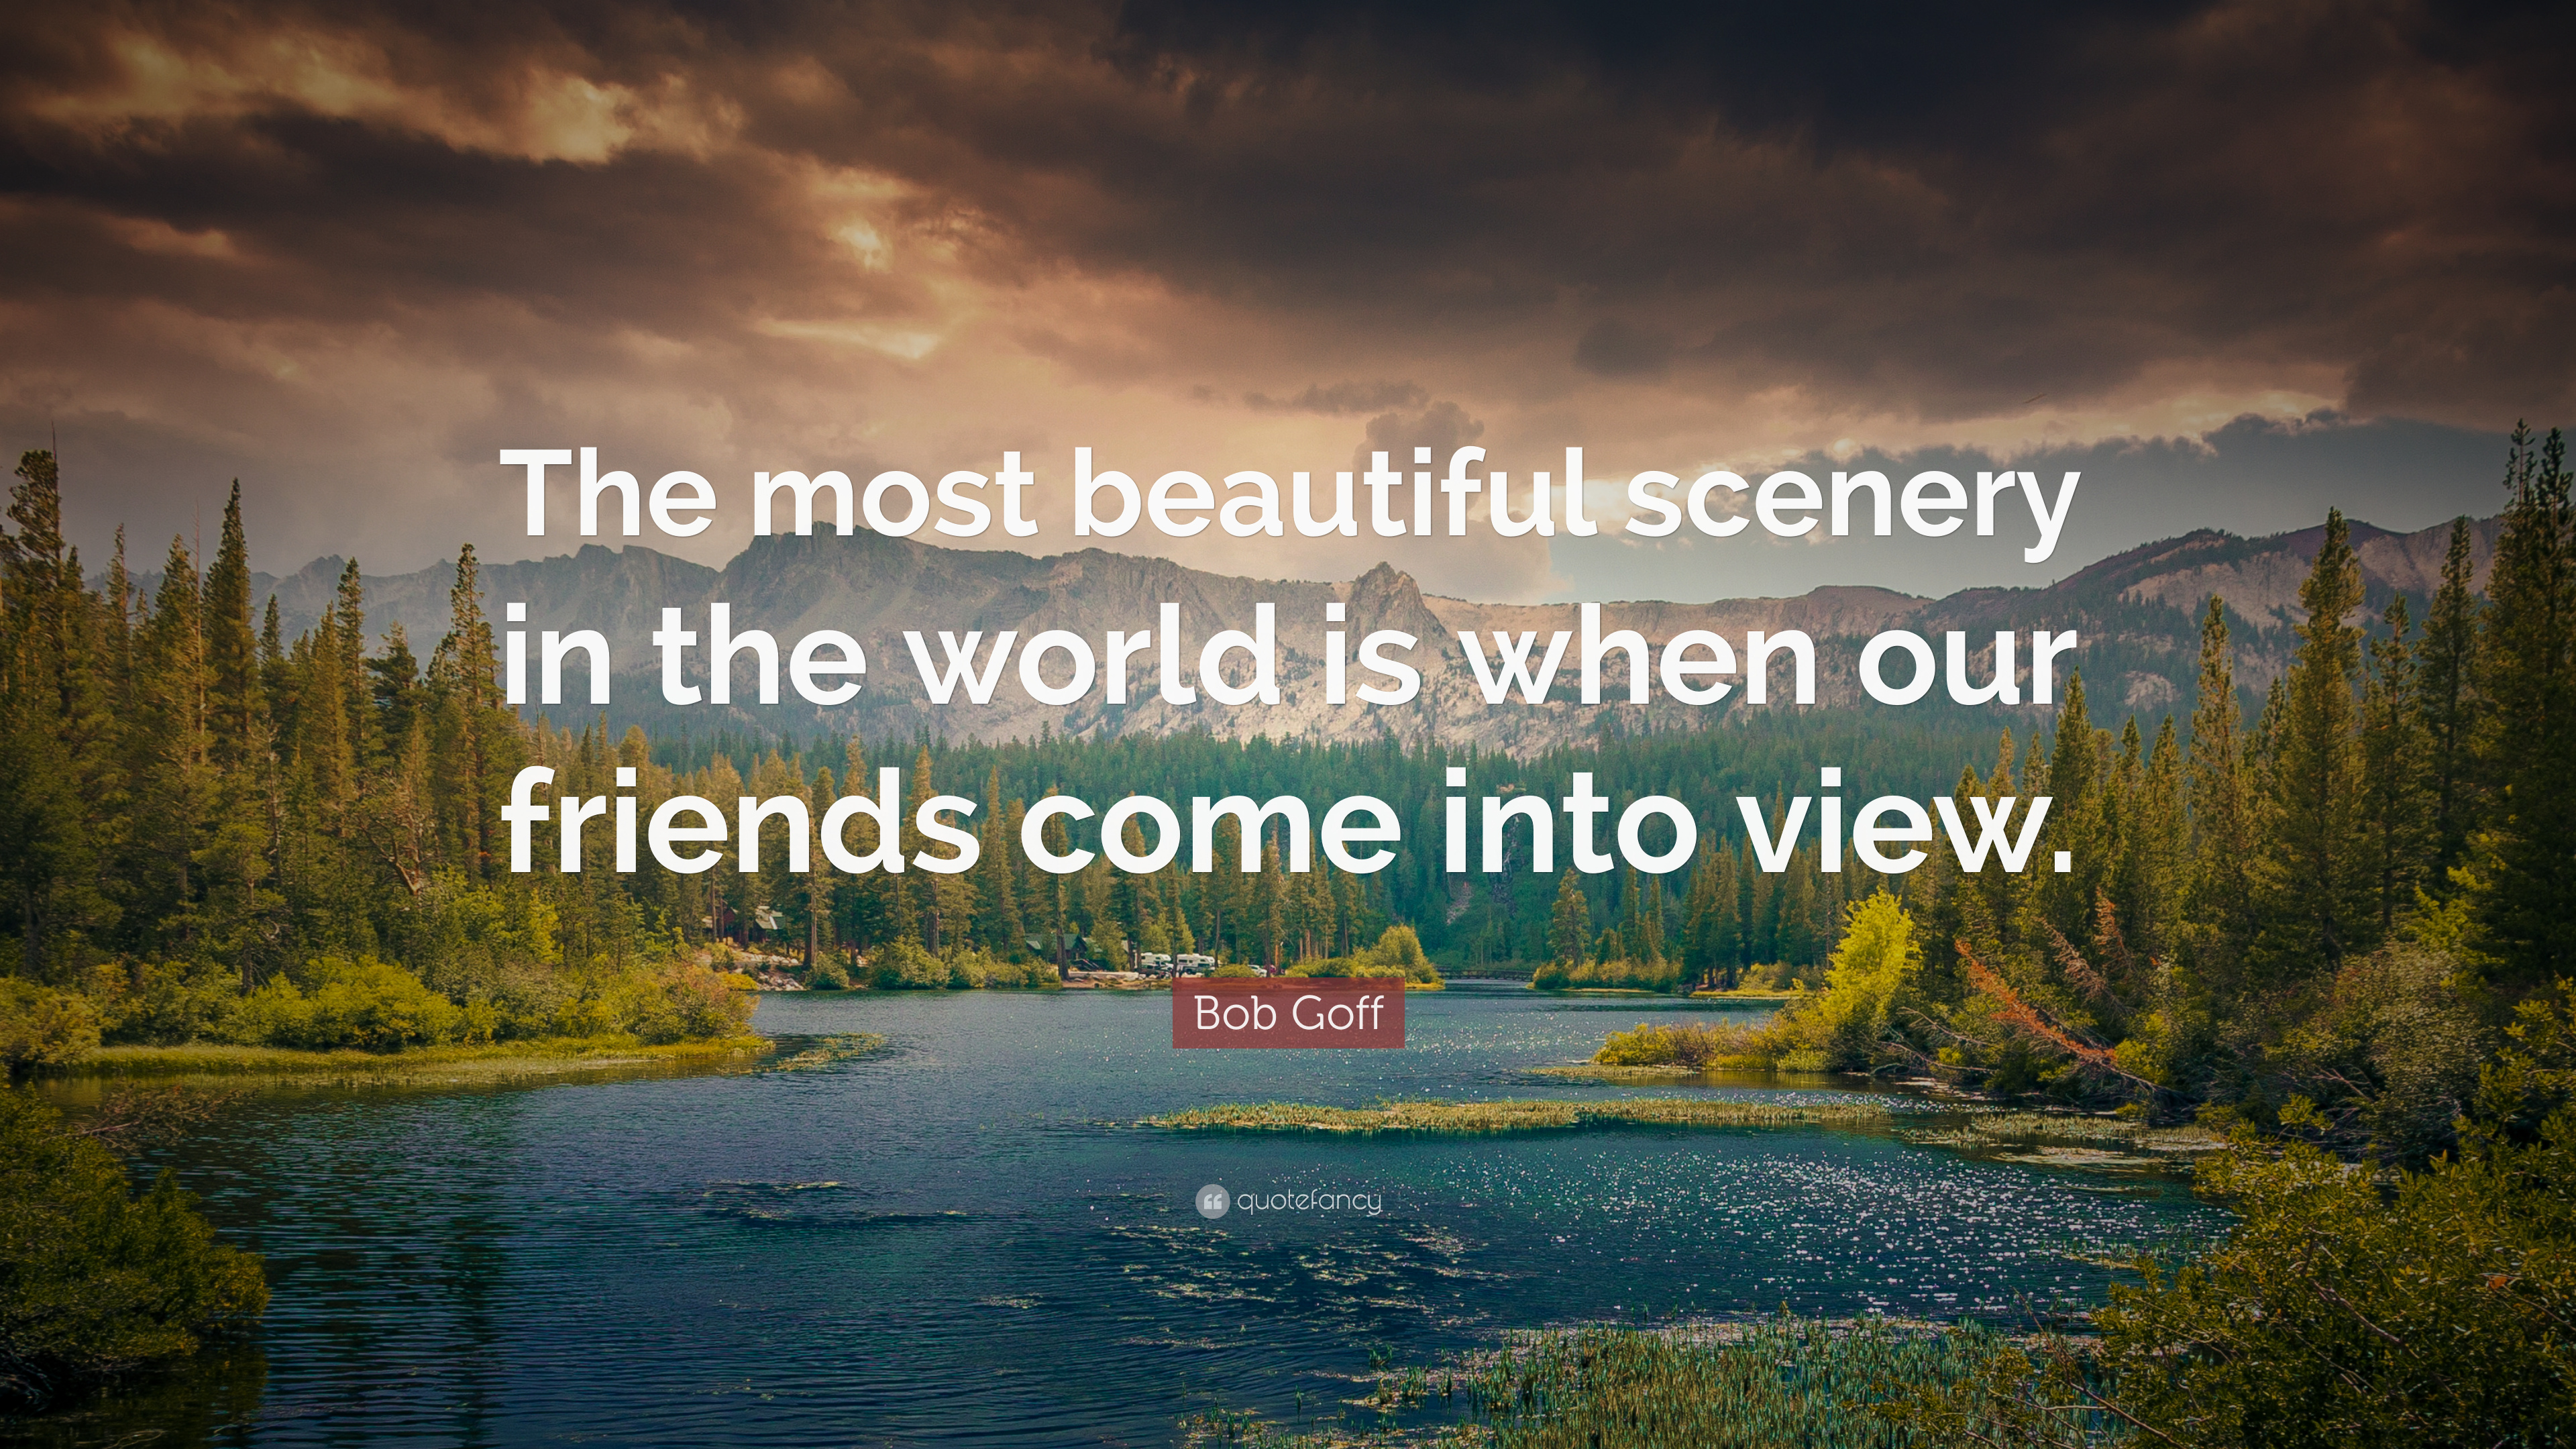 Bob Goff Quote The Most Beautiful Scenery In The World Is When Our